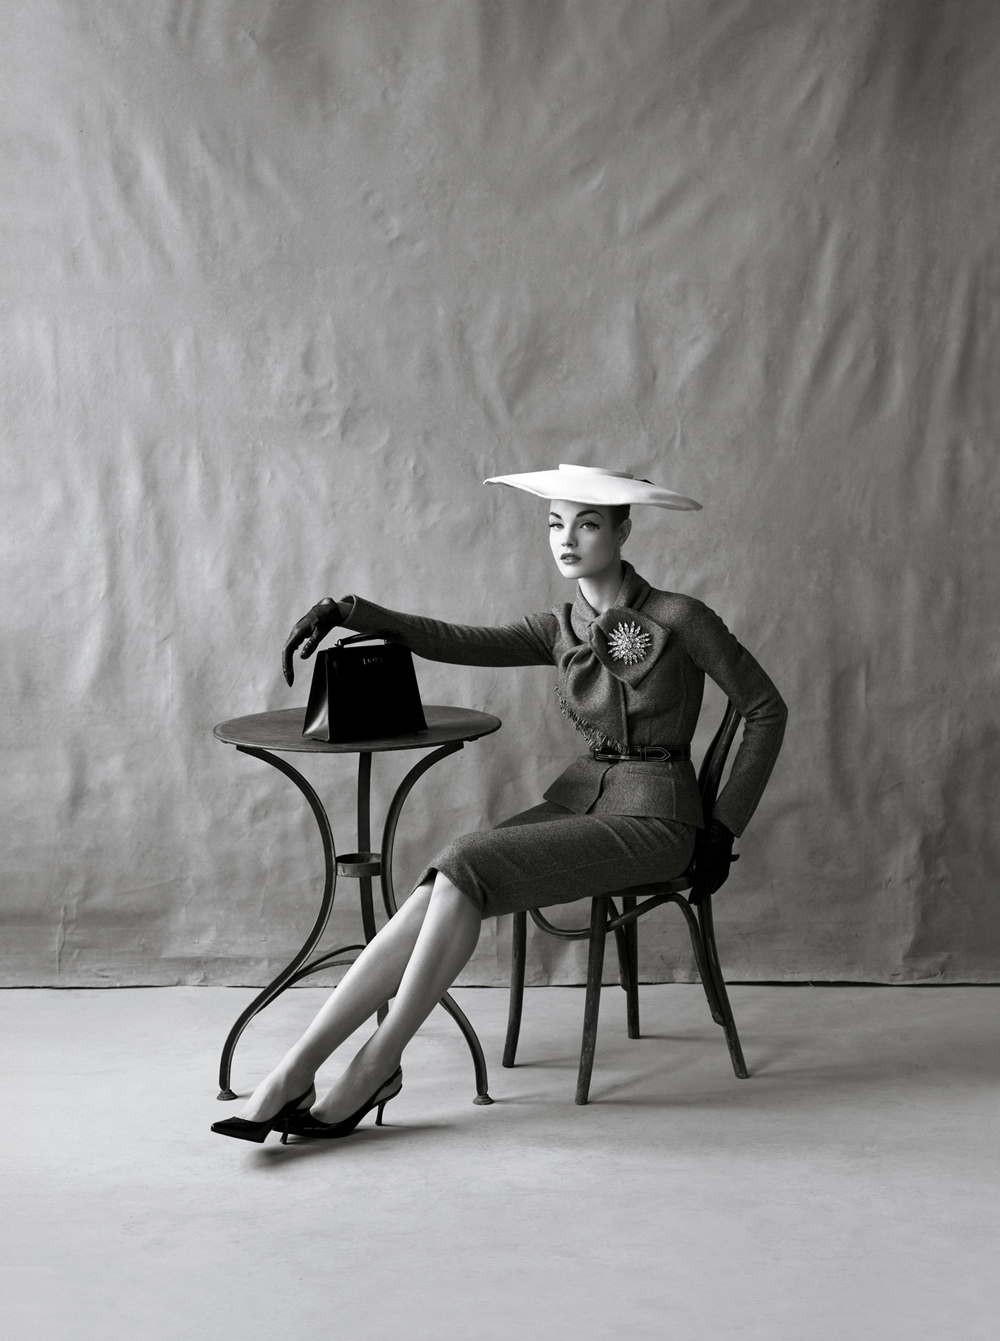 Natalia Vodianova as Jean Patchett photographed by Steven Meisel and styled by Grace Coddington for The great pretender / Vogue US May 2009 via fashioned by love british fashion blog